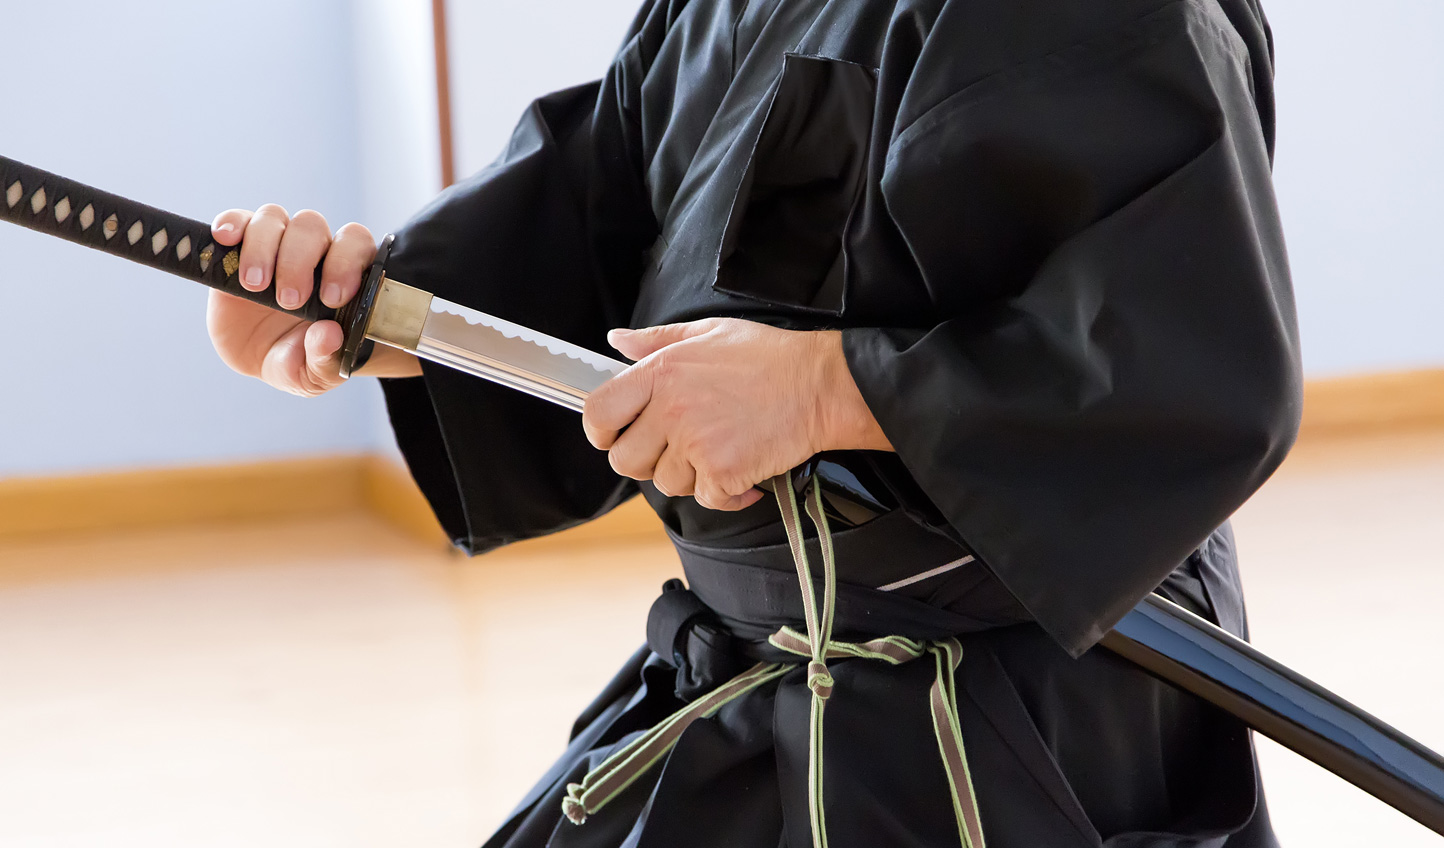 Gain insight into the samurai way of life